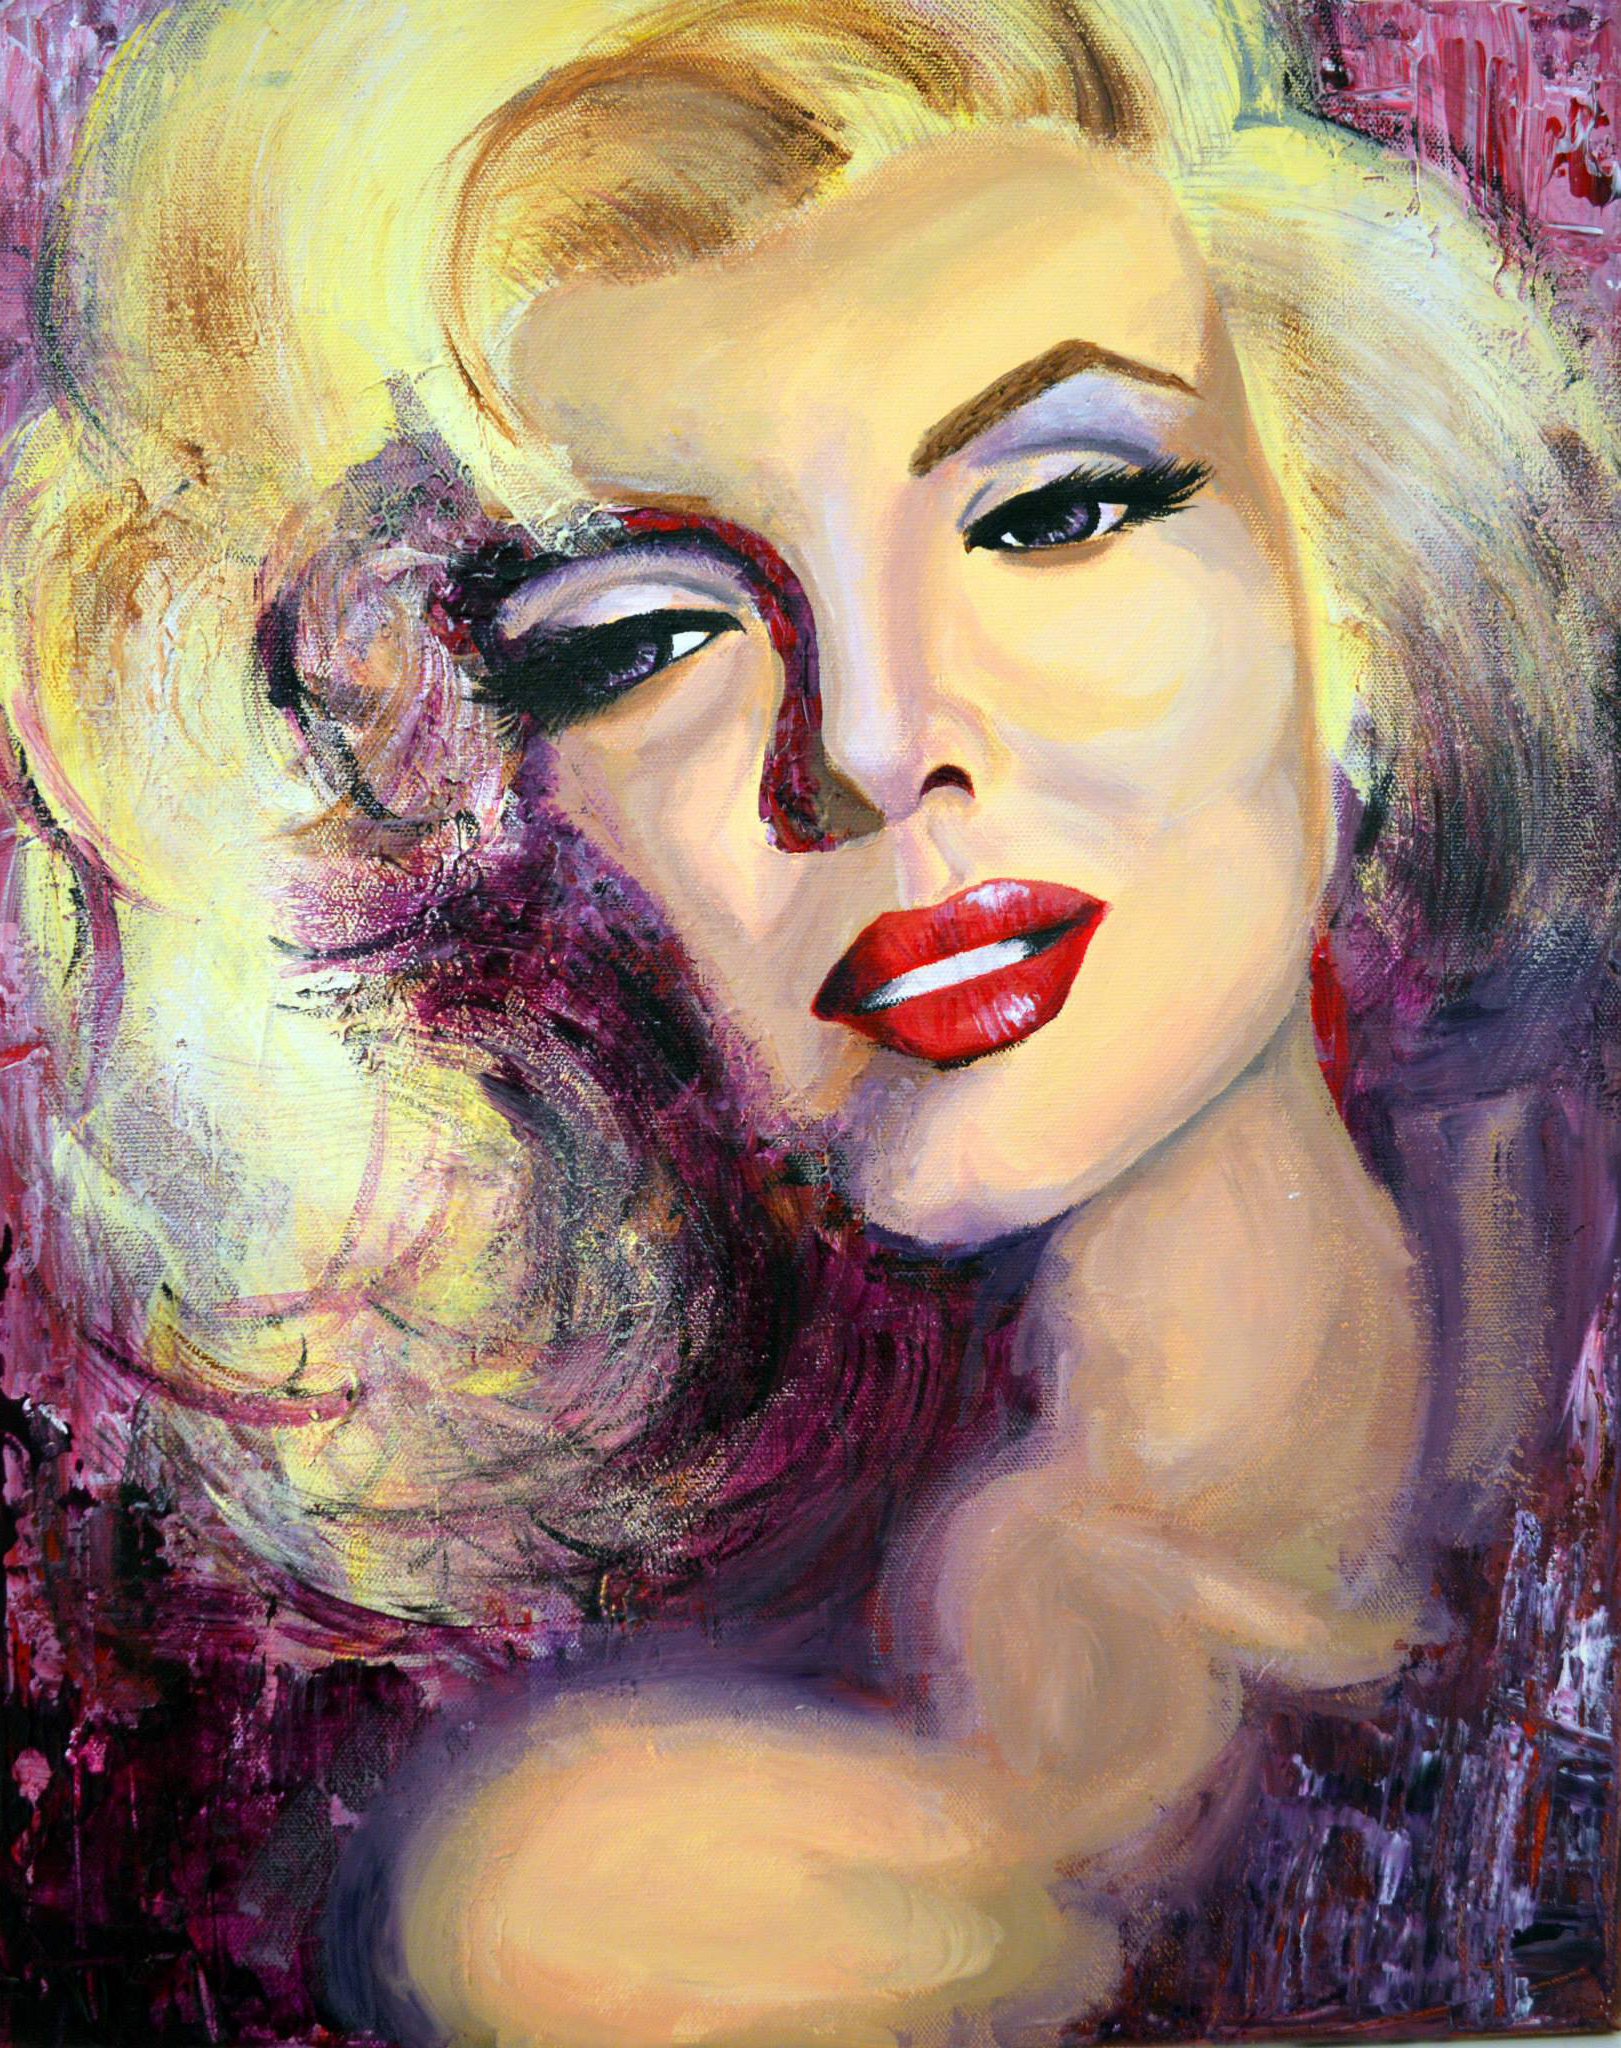 Acrylic portrait of Marilyn Monroe